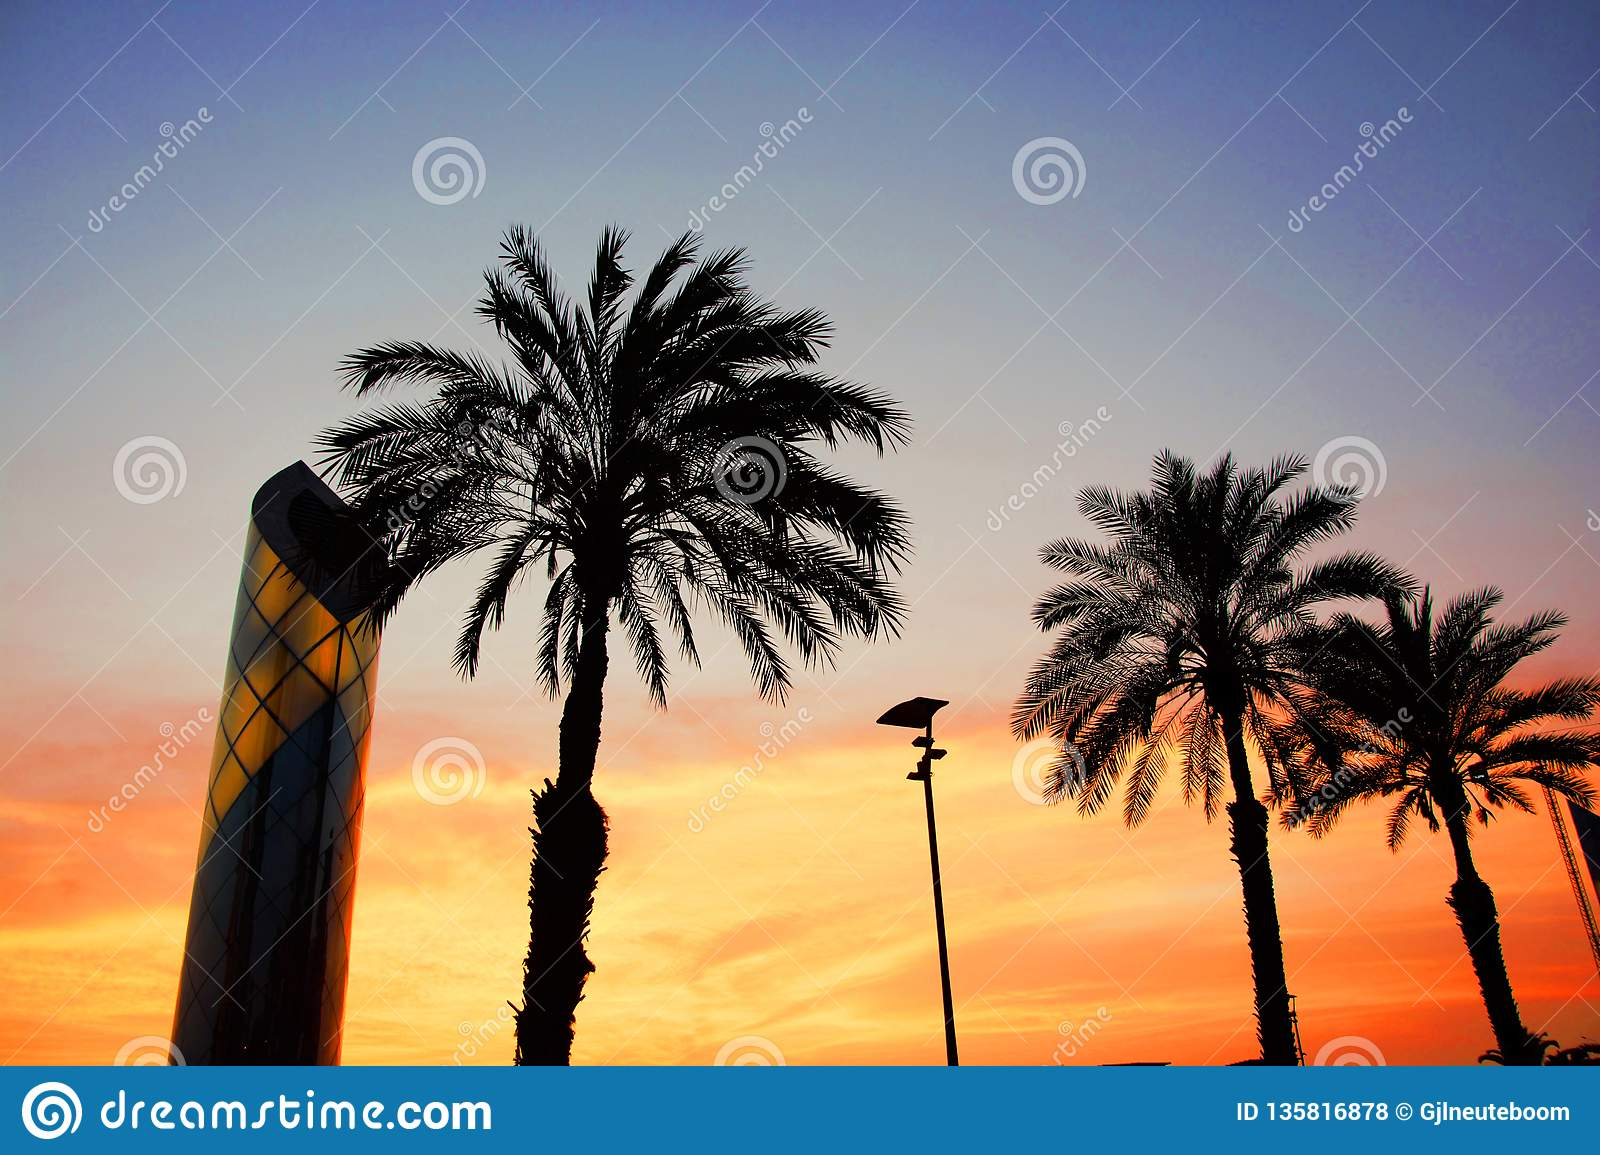 Looking the Peruvian sunset thrue the palm trees